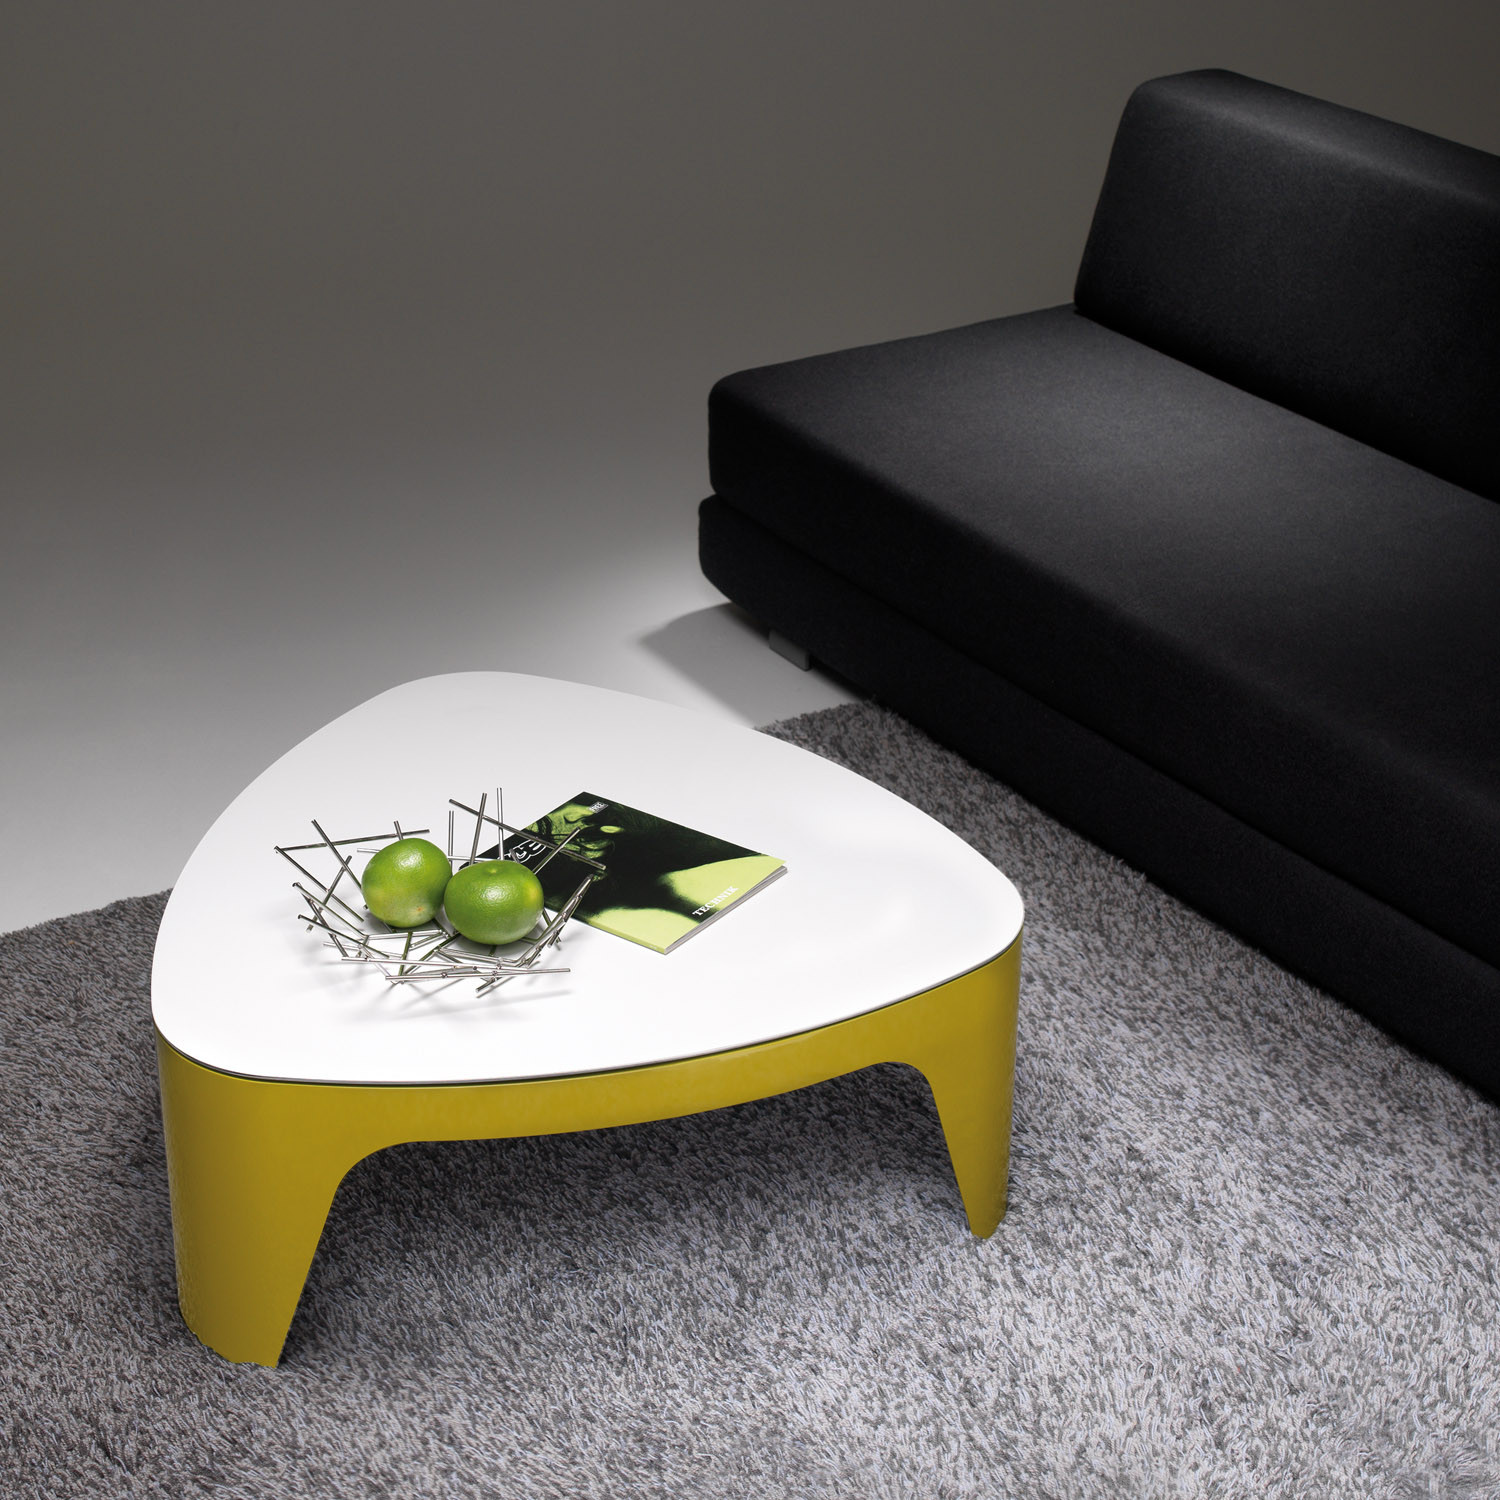 Muller LT2 Coffee Tables